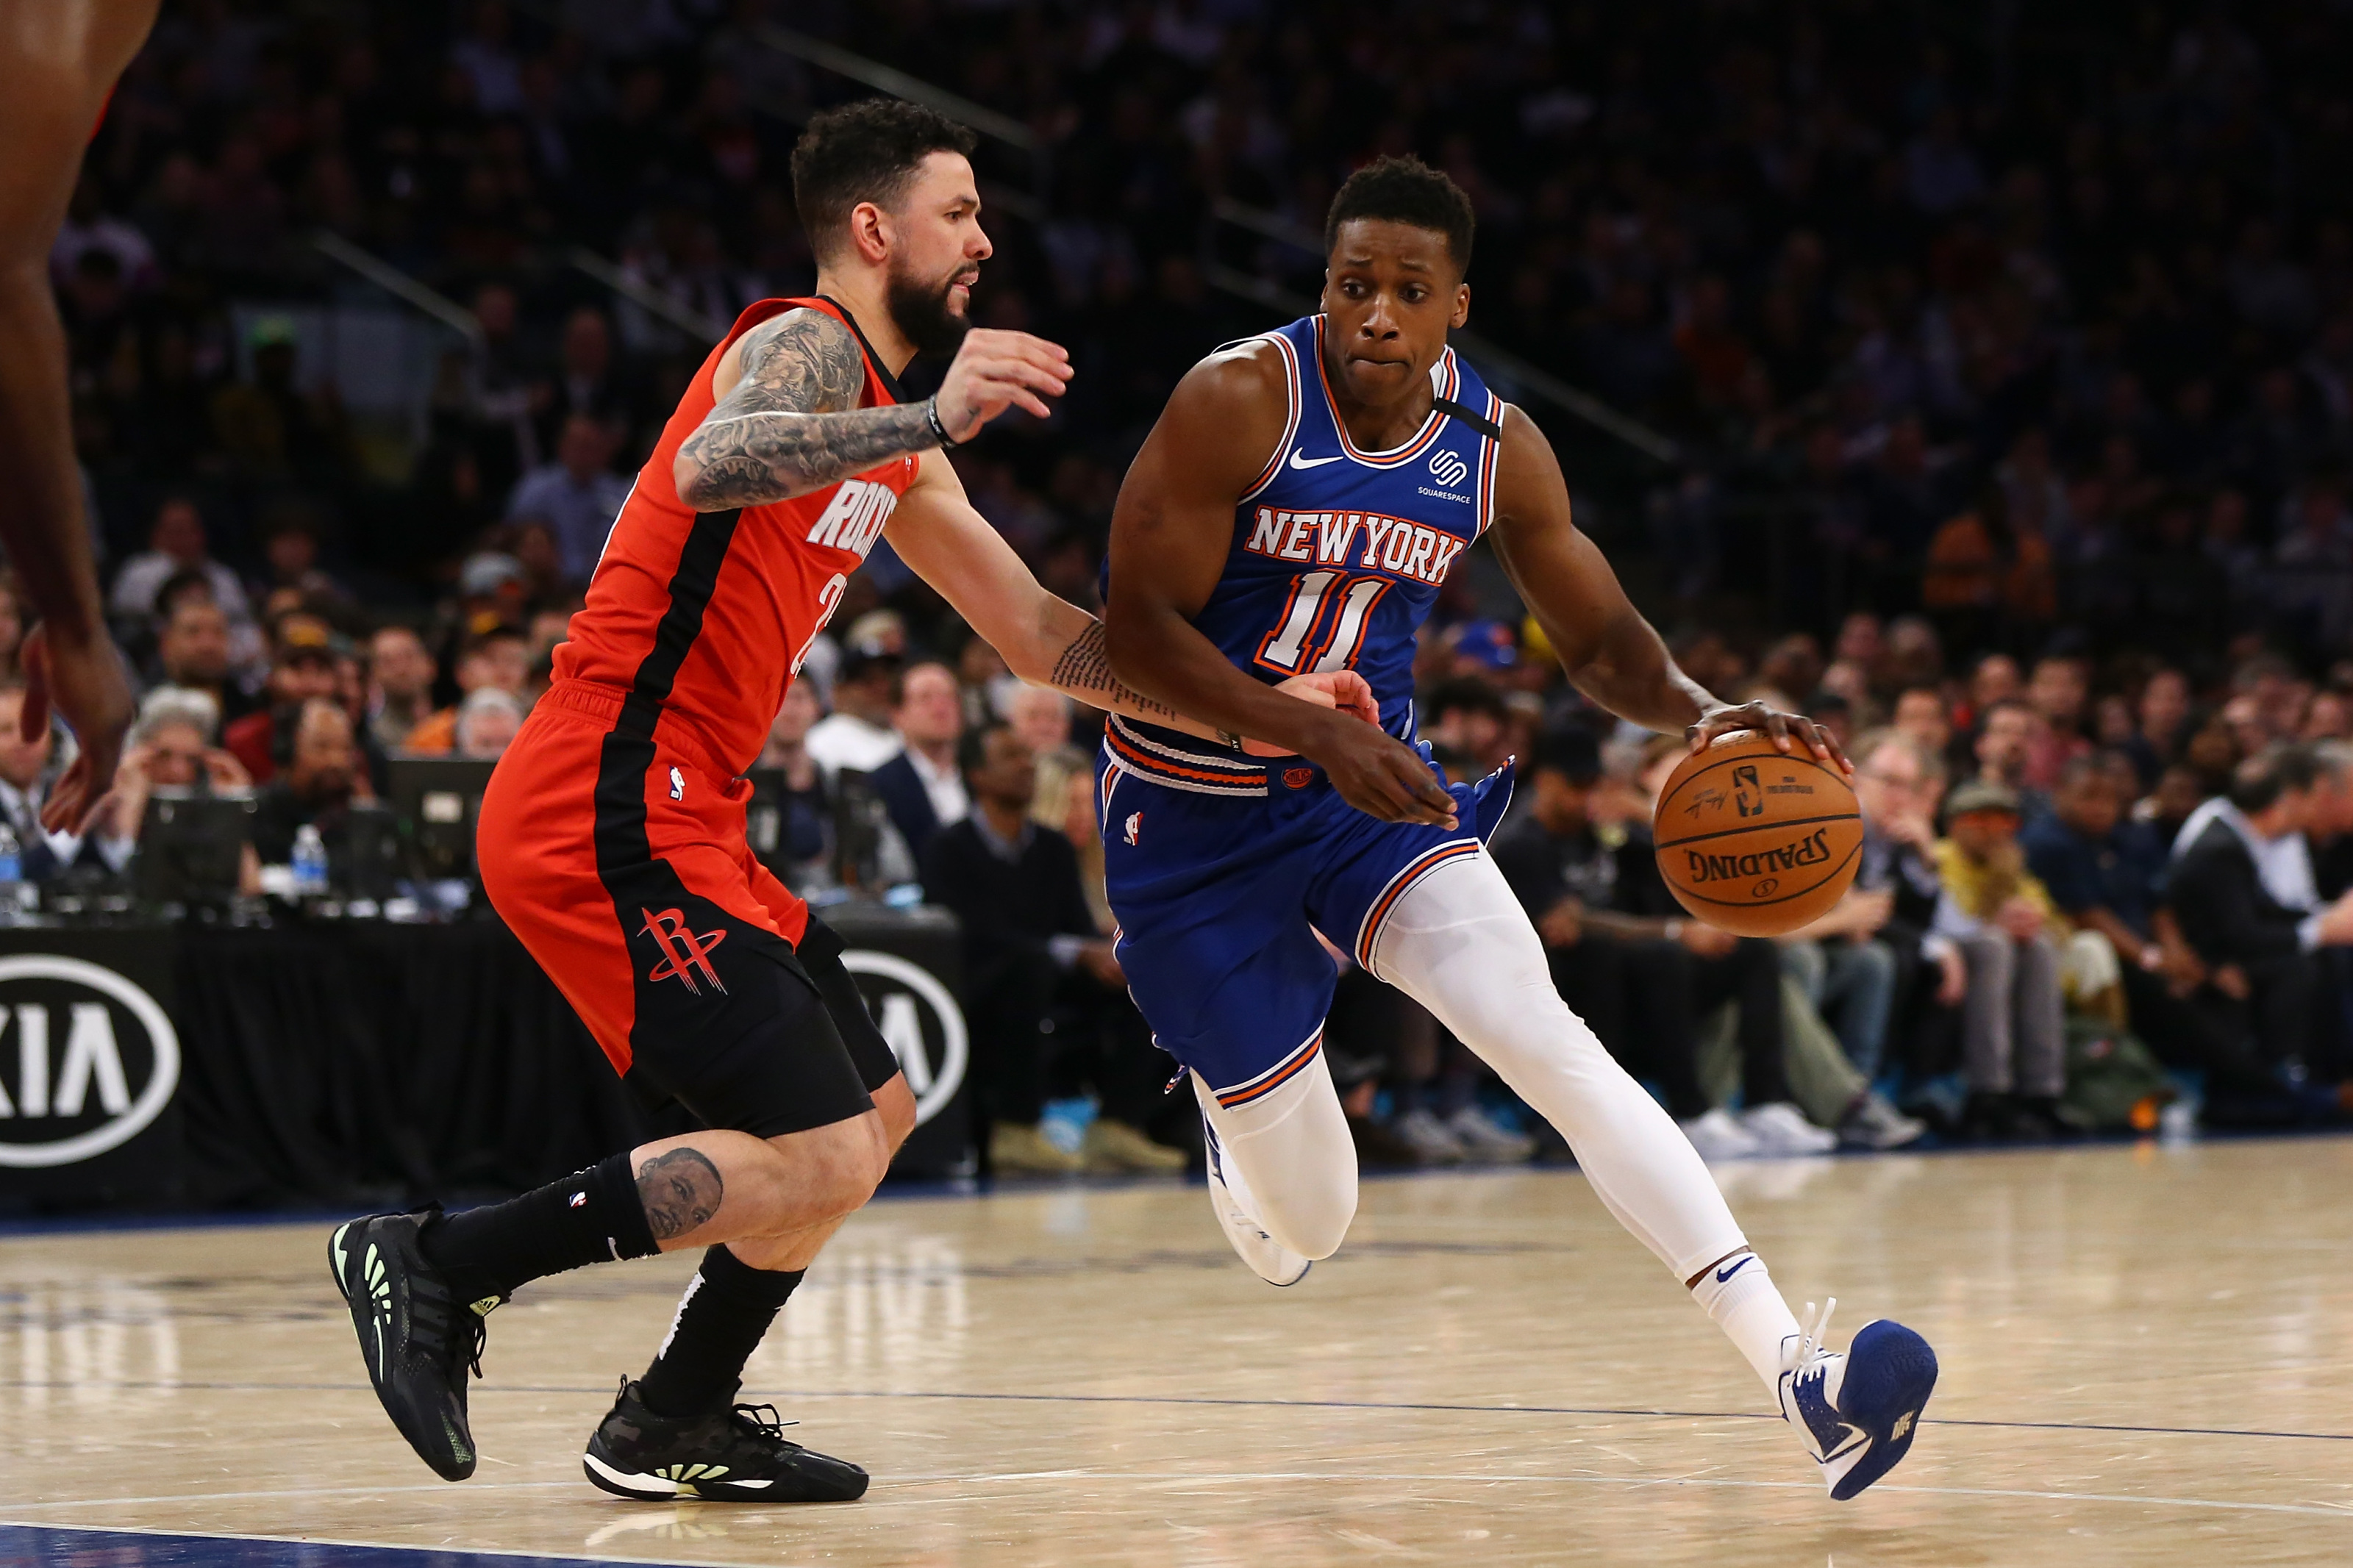 New York Knicks: Frank Ntilikina is finally playing with confidence